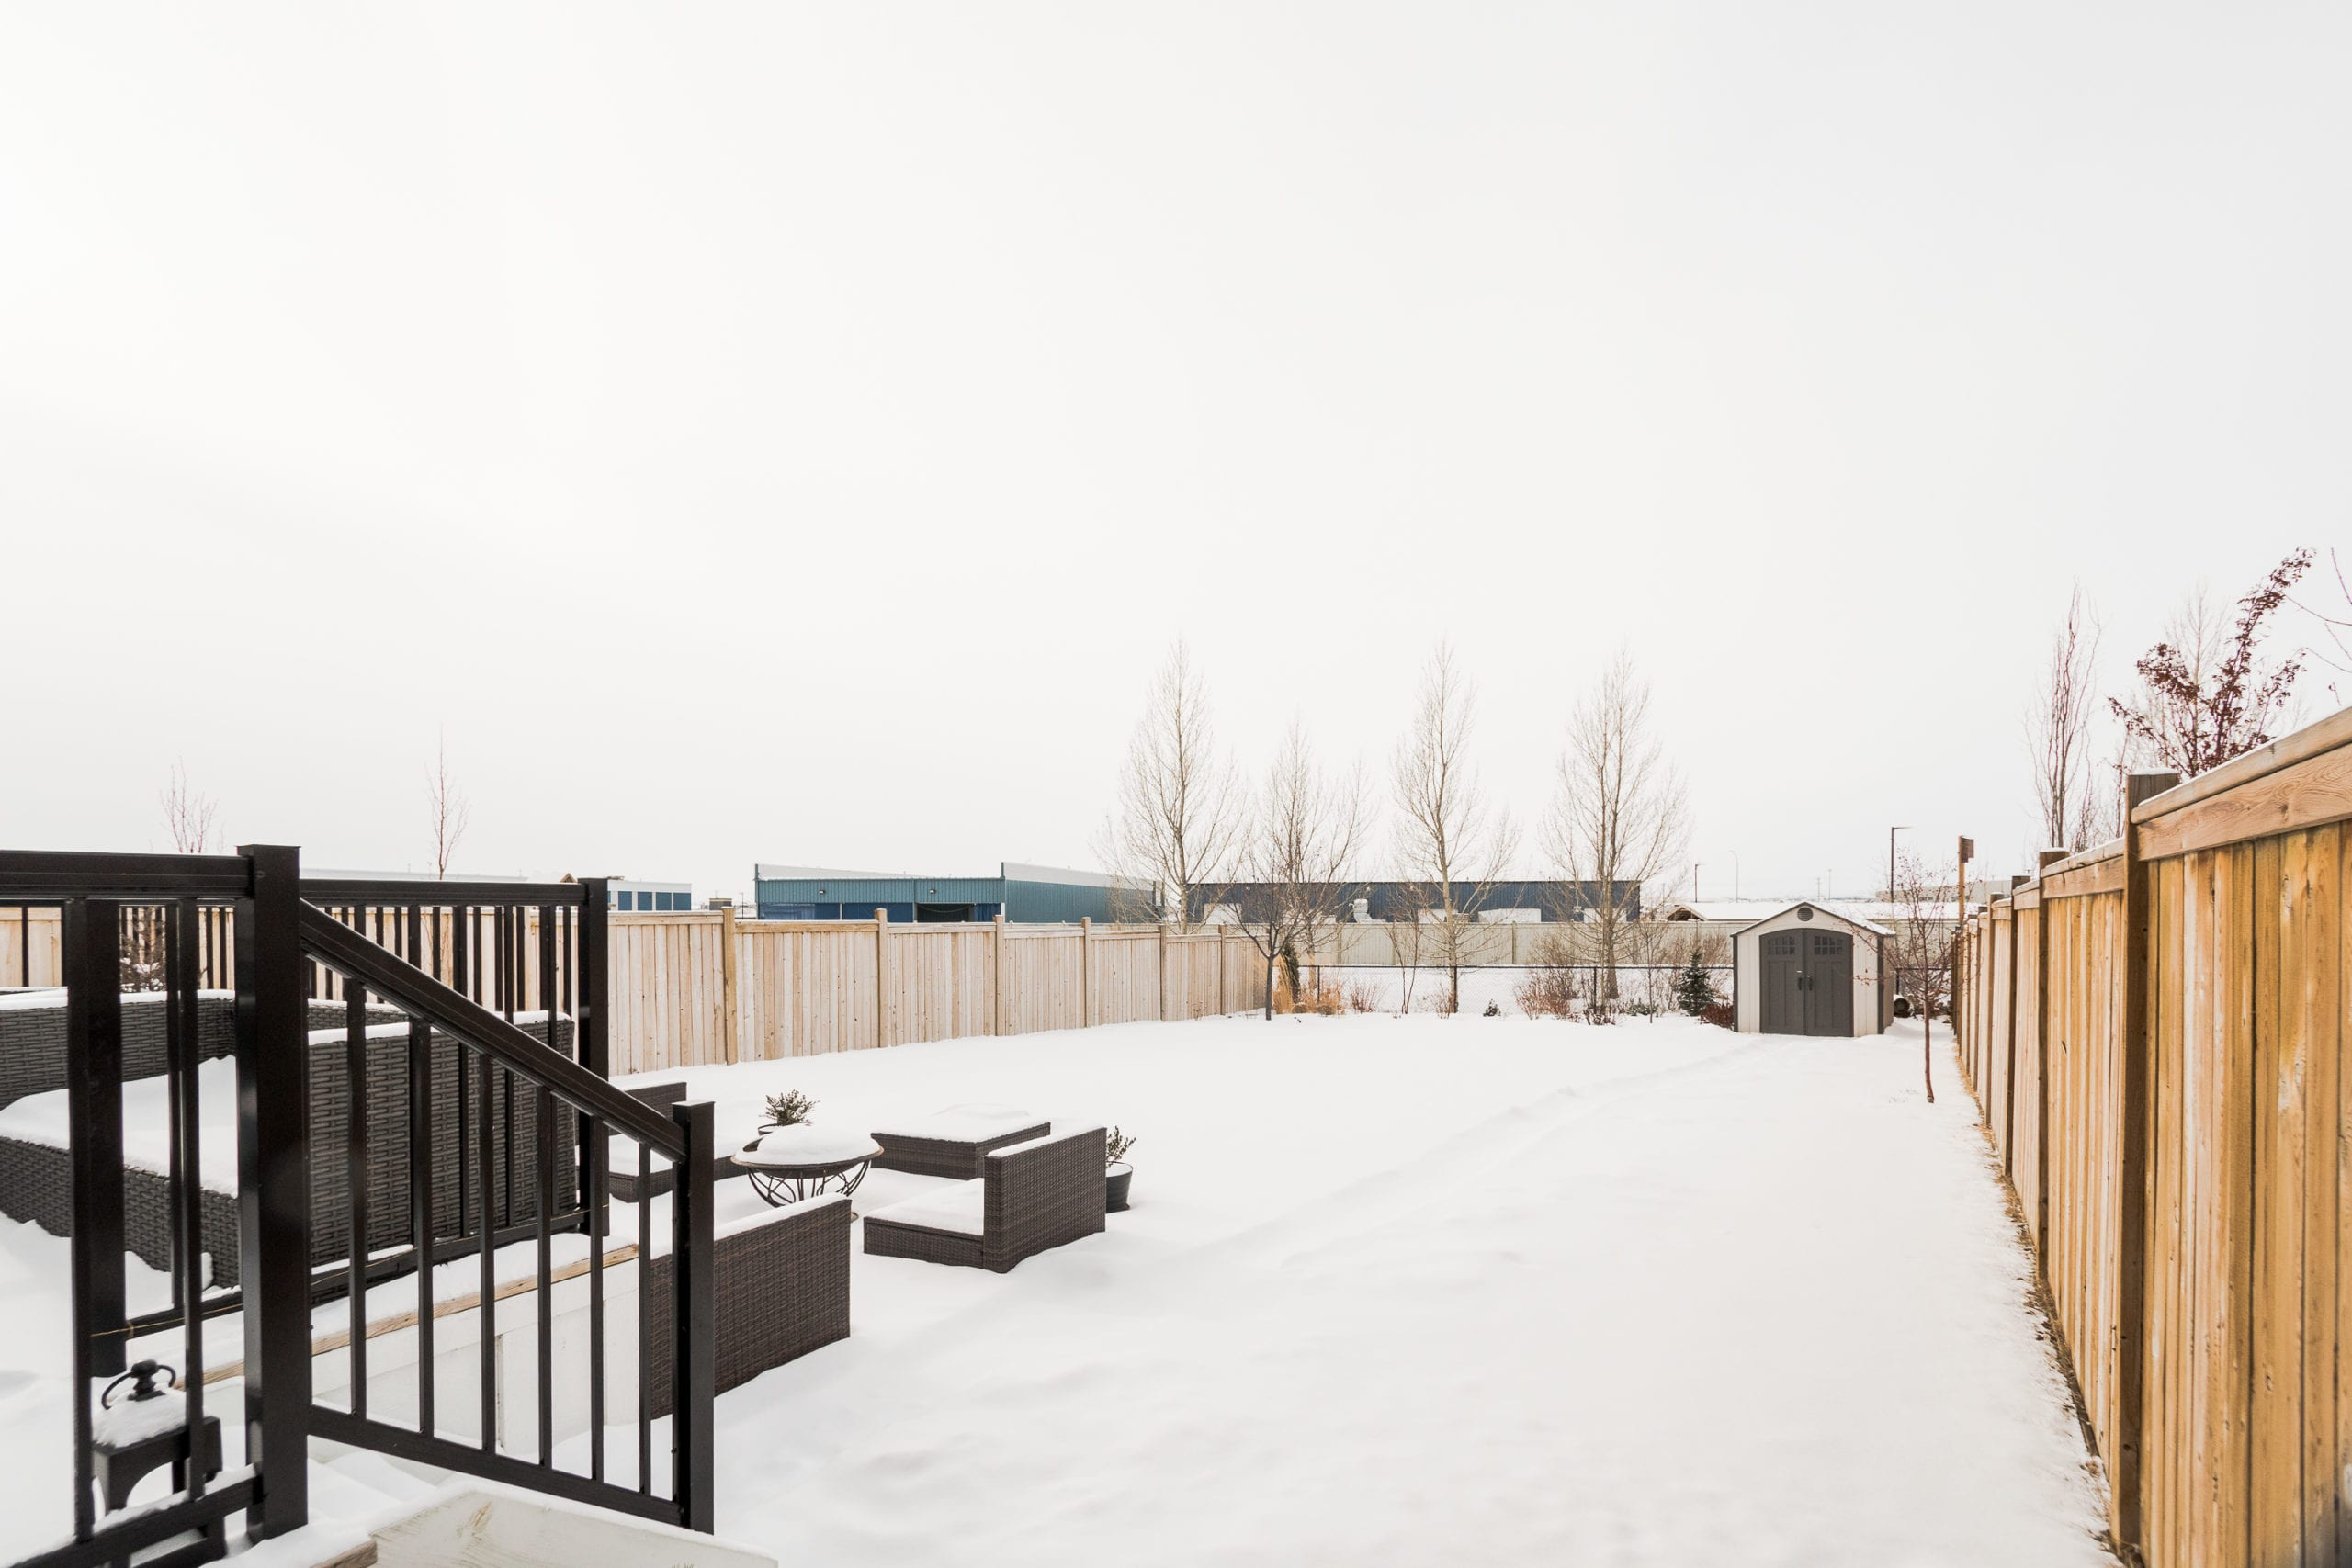 Hello Gorgeous - 1306 Kings Heights Way SE, Airdrie AB. - Tara Molina Real Estate (52 of 53)